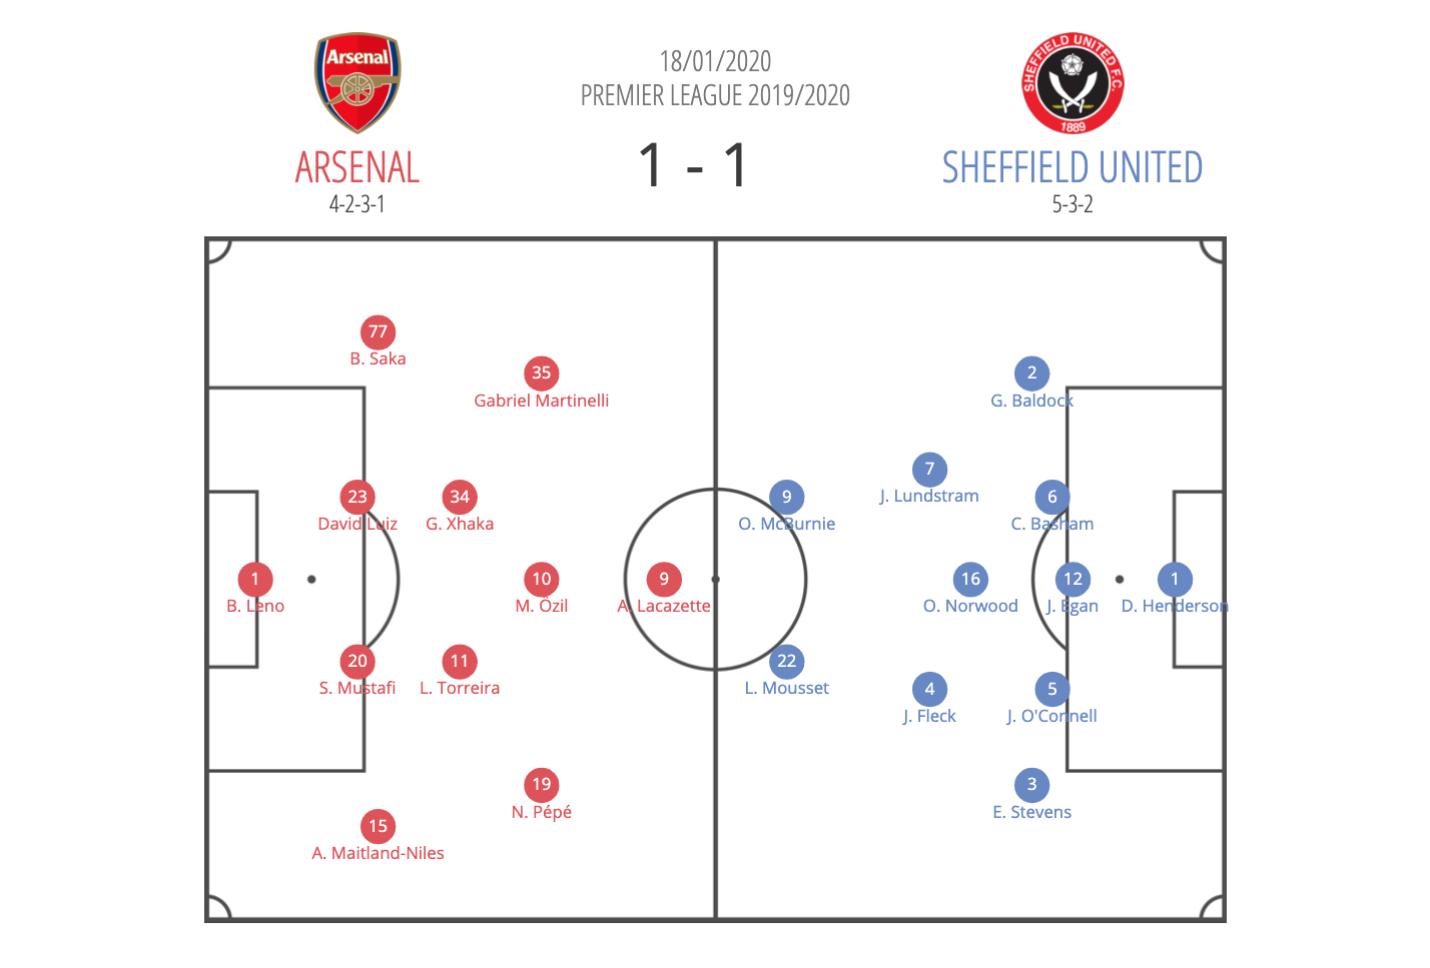 Premier League 2019/20: Arsenal vs Sheffield United - tactical analysis tactics